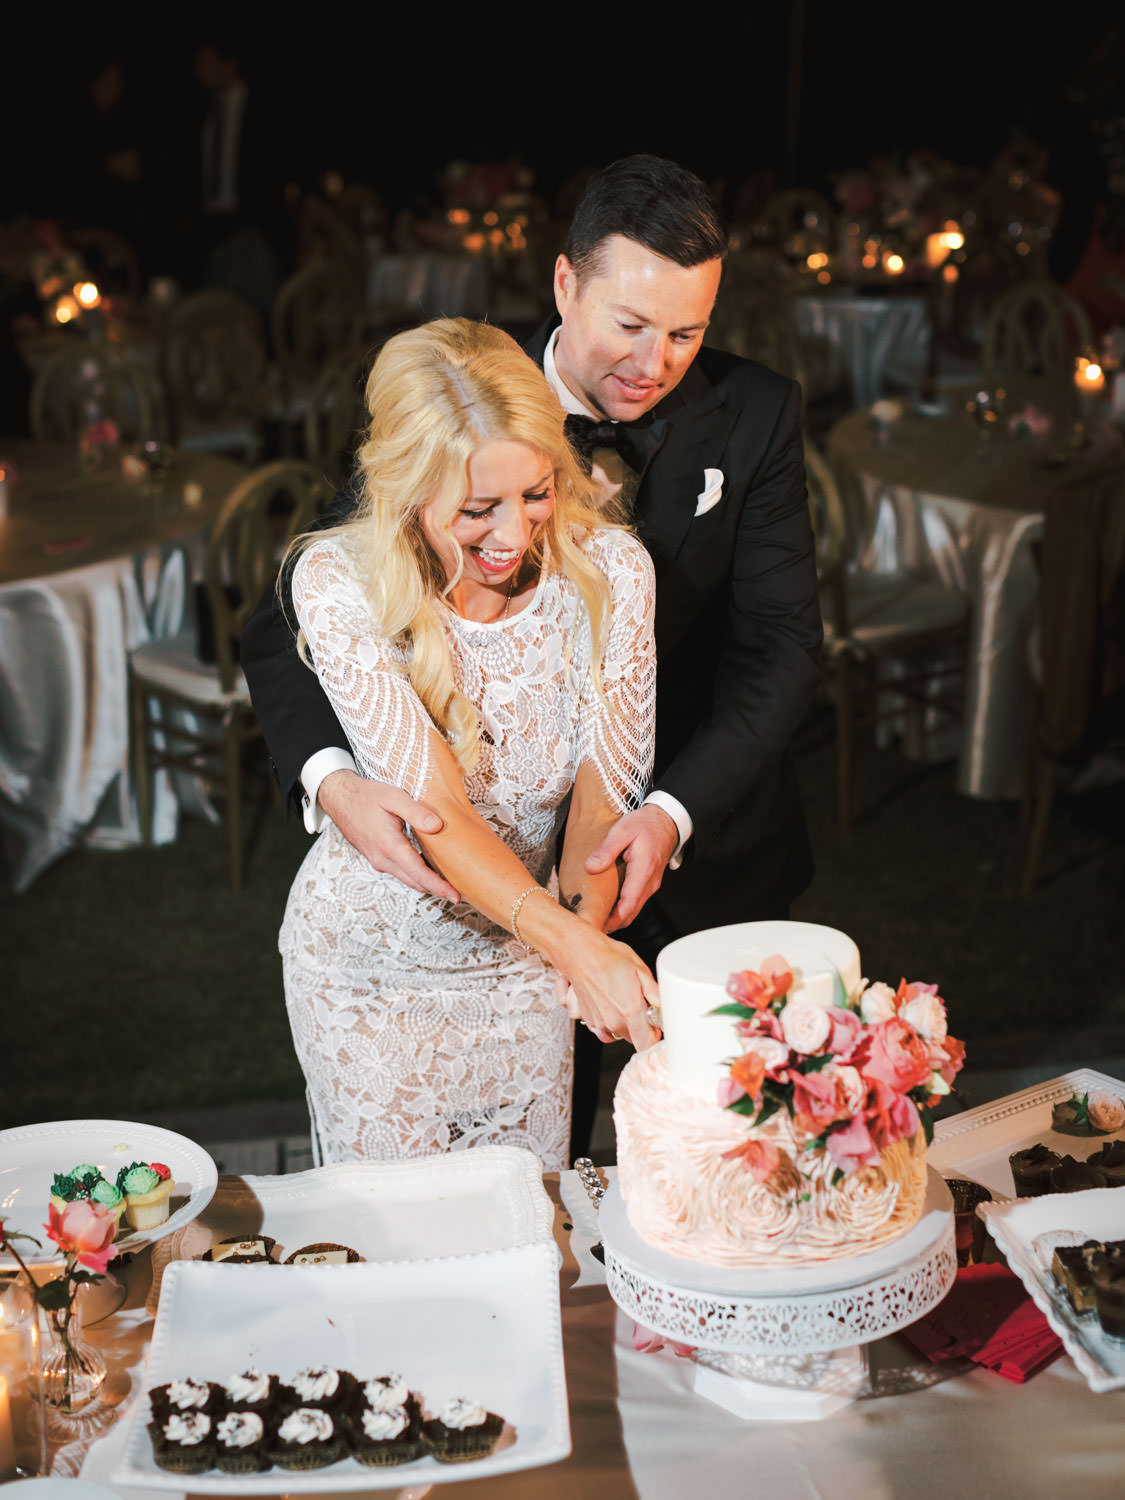 BRide wearing a midi white reception dress cutting the cake with the groom. Miramonte Resort wedding reception. Photography by Cavin Elizabeth.